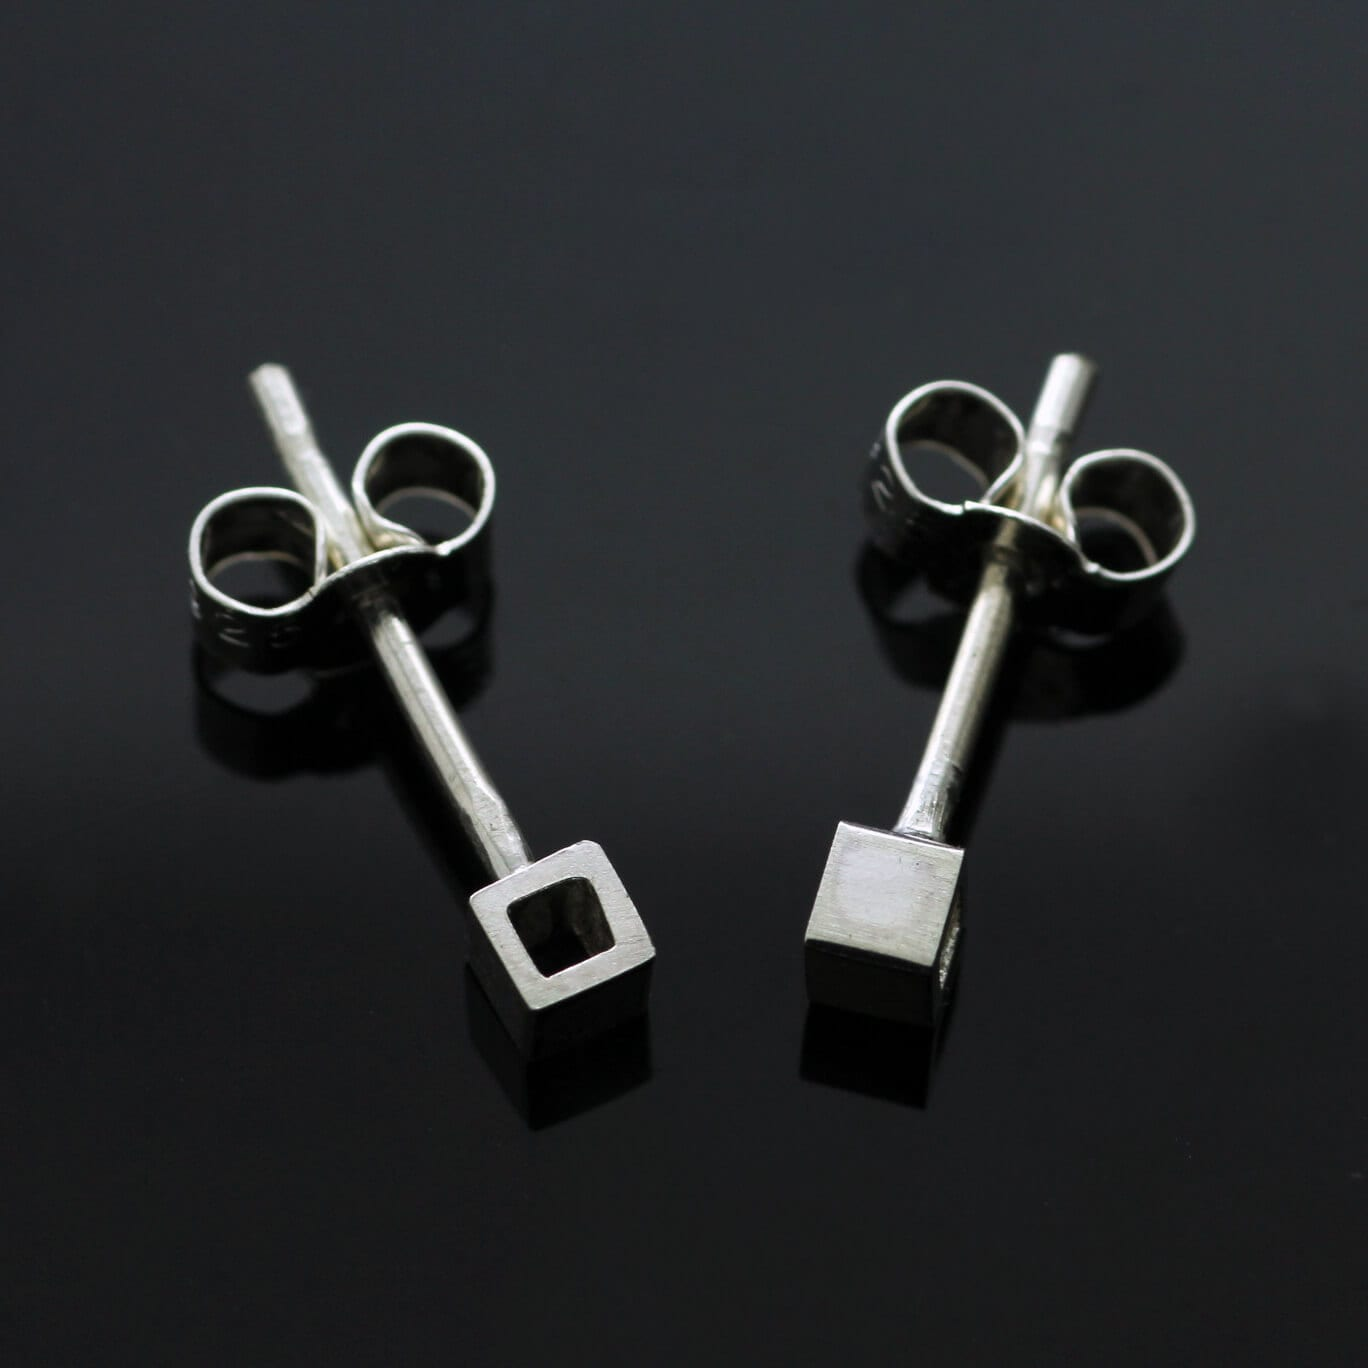 Modern handmade geometric silver Cube stud earrings